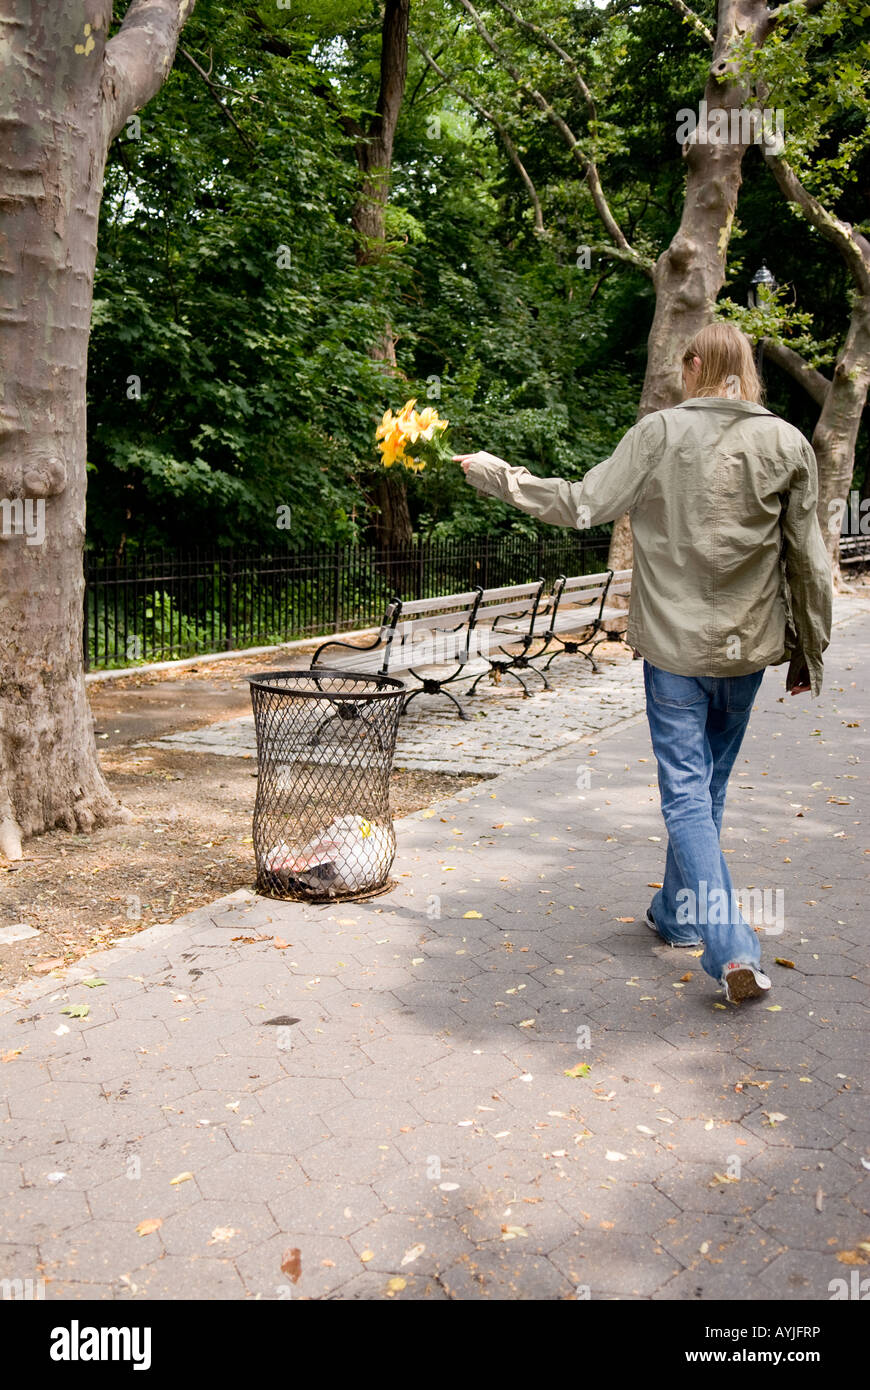 young Caucasian boy disheartened throwing away flowers - Stock Image